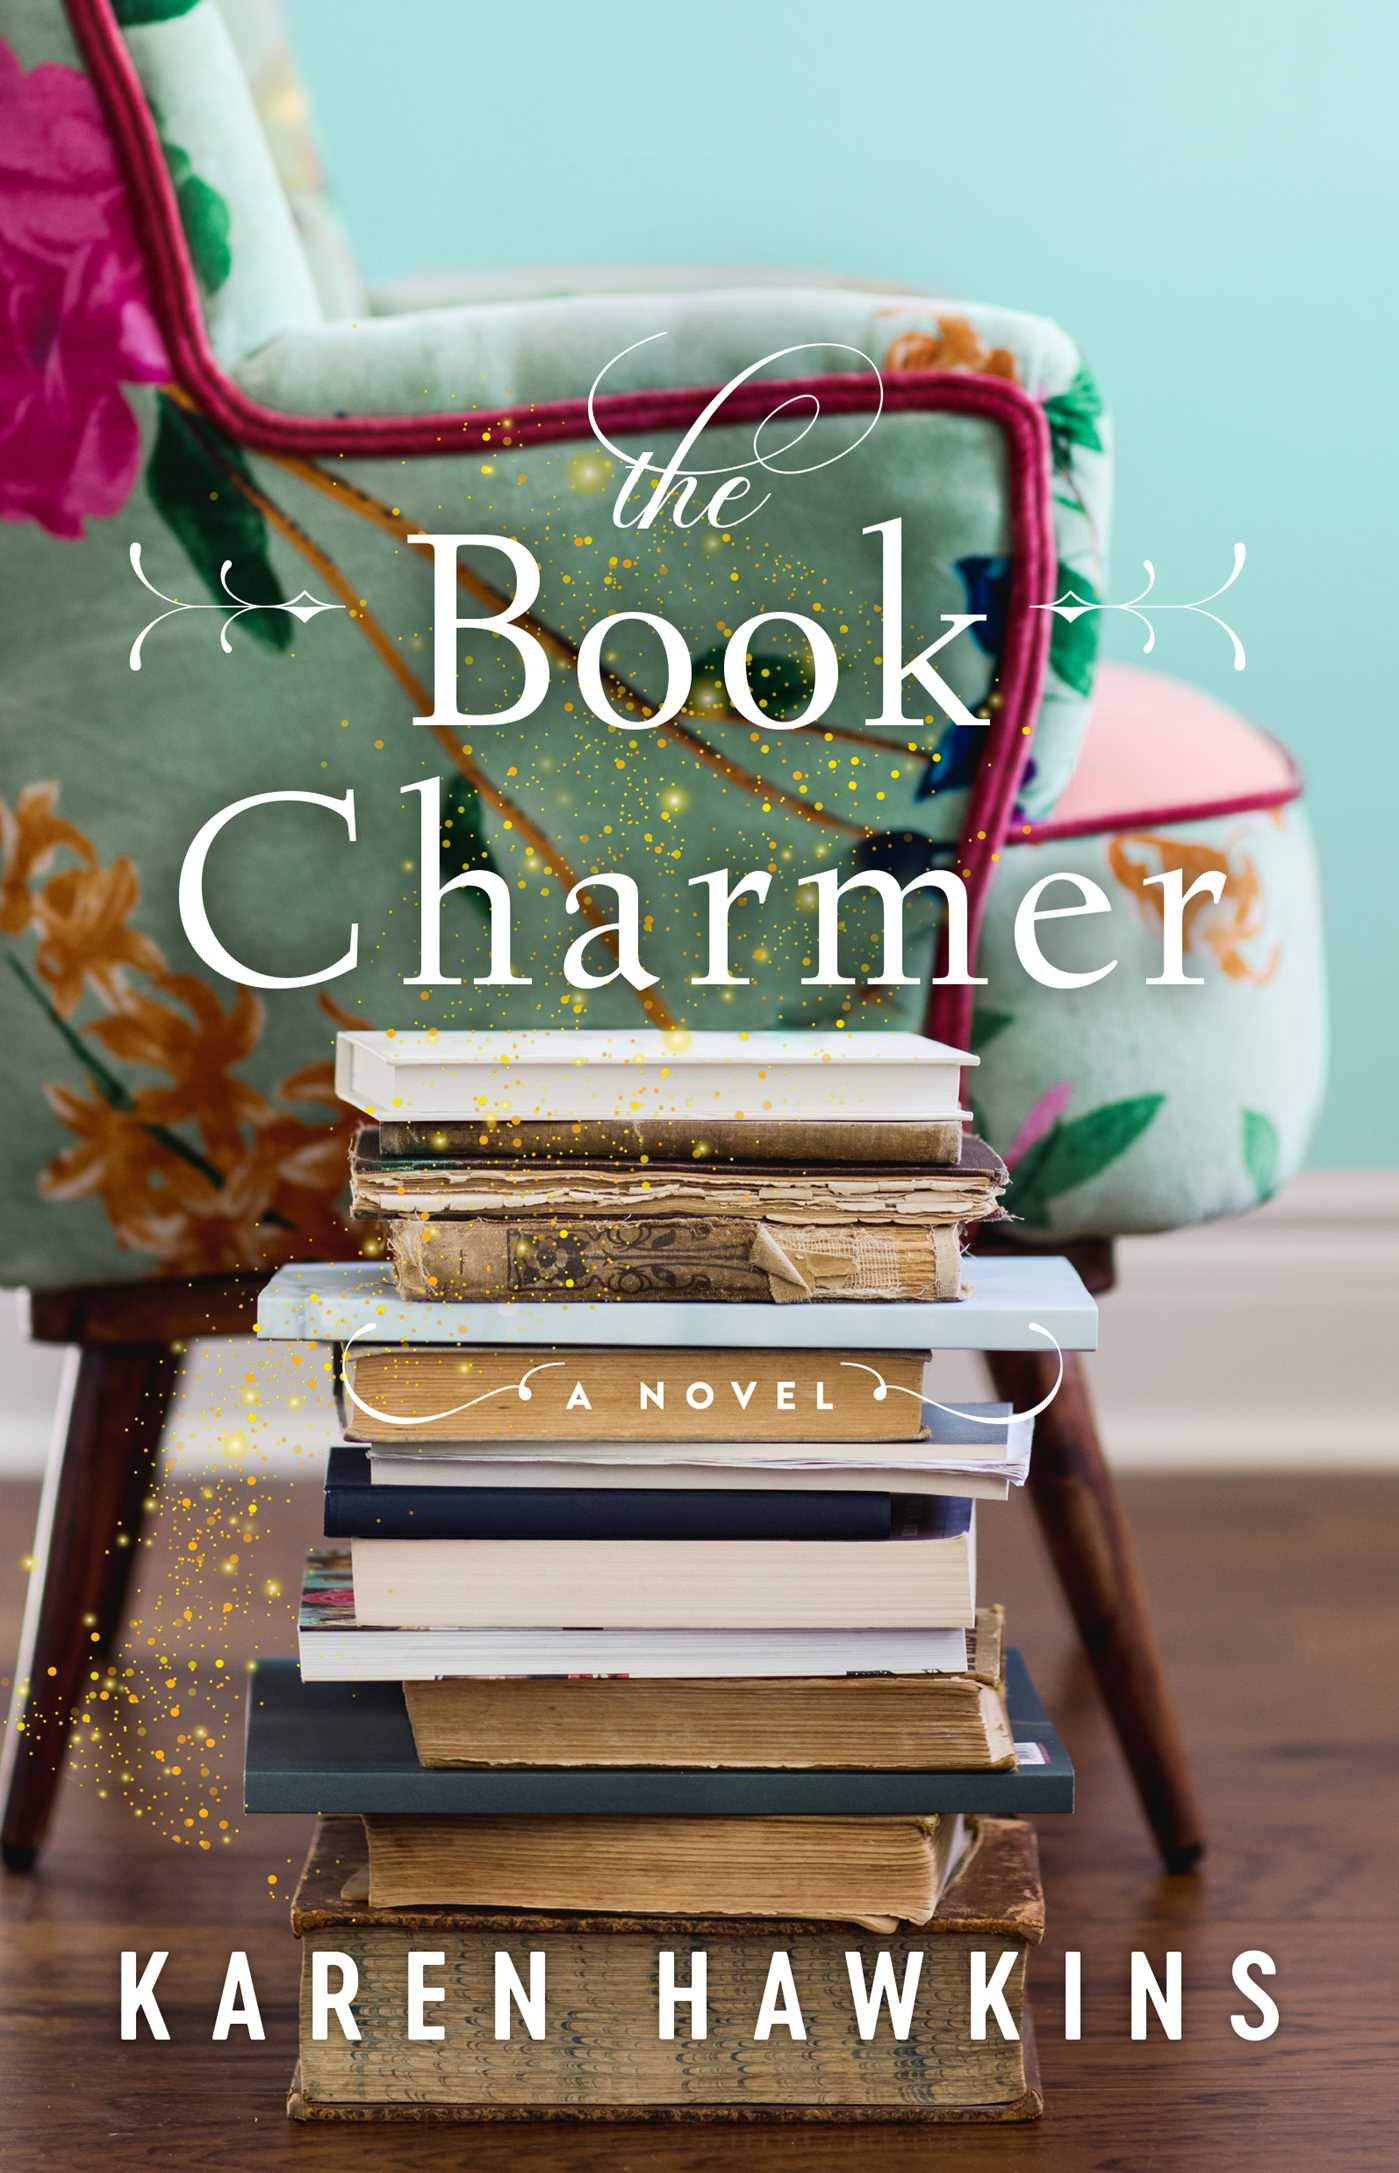 The Book Charmer by Karen Hawkins is perfect for fans of Sarah Addison Allen